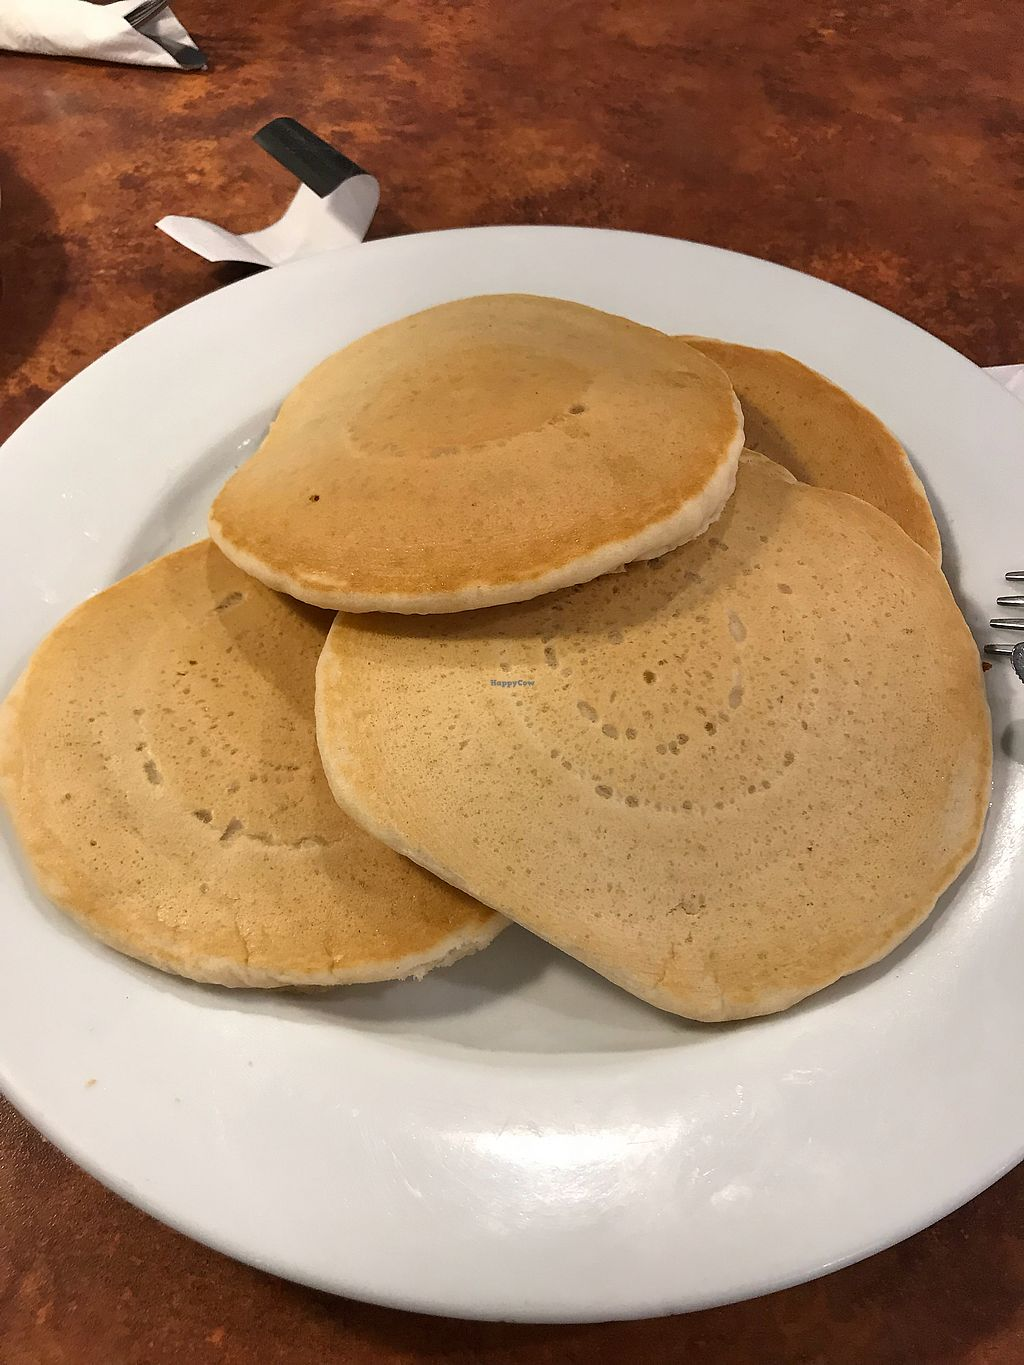 "Photo of Maywood Pancake House  by <a href=""/members/profile/Lucipurrr"">Lucipurrr</a> <br/>Vegan Pancakes <br/> April 15, 2018  - <a href='/contact/abuse/image/58273/386334'>Report</a>"